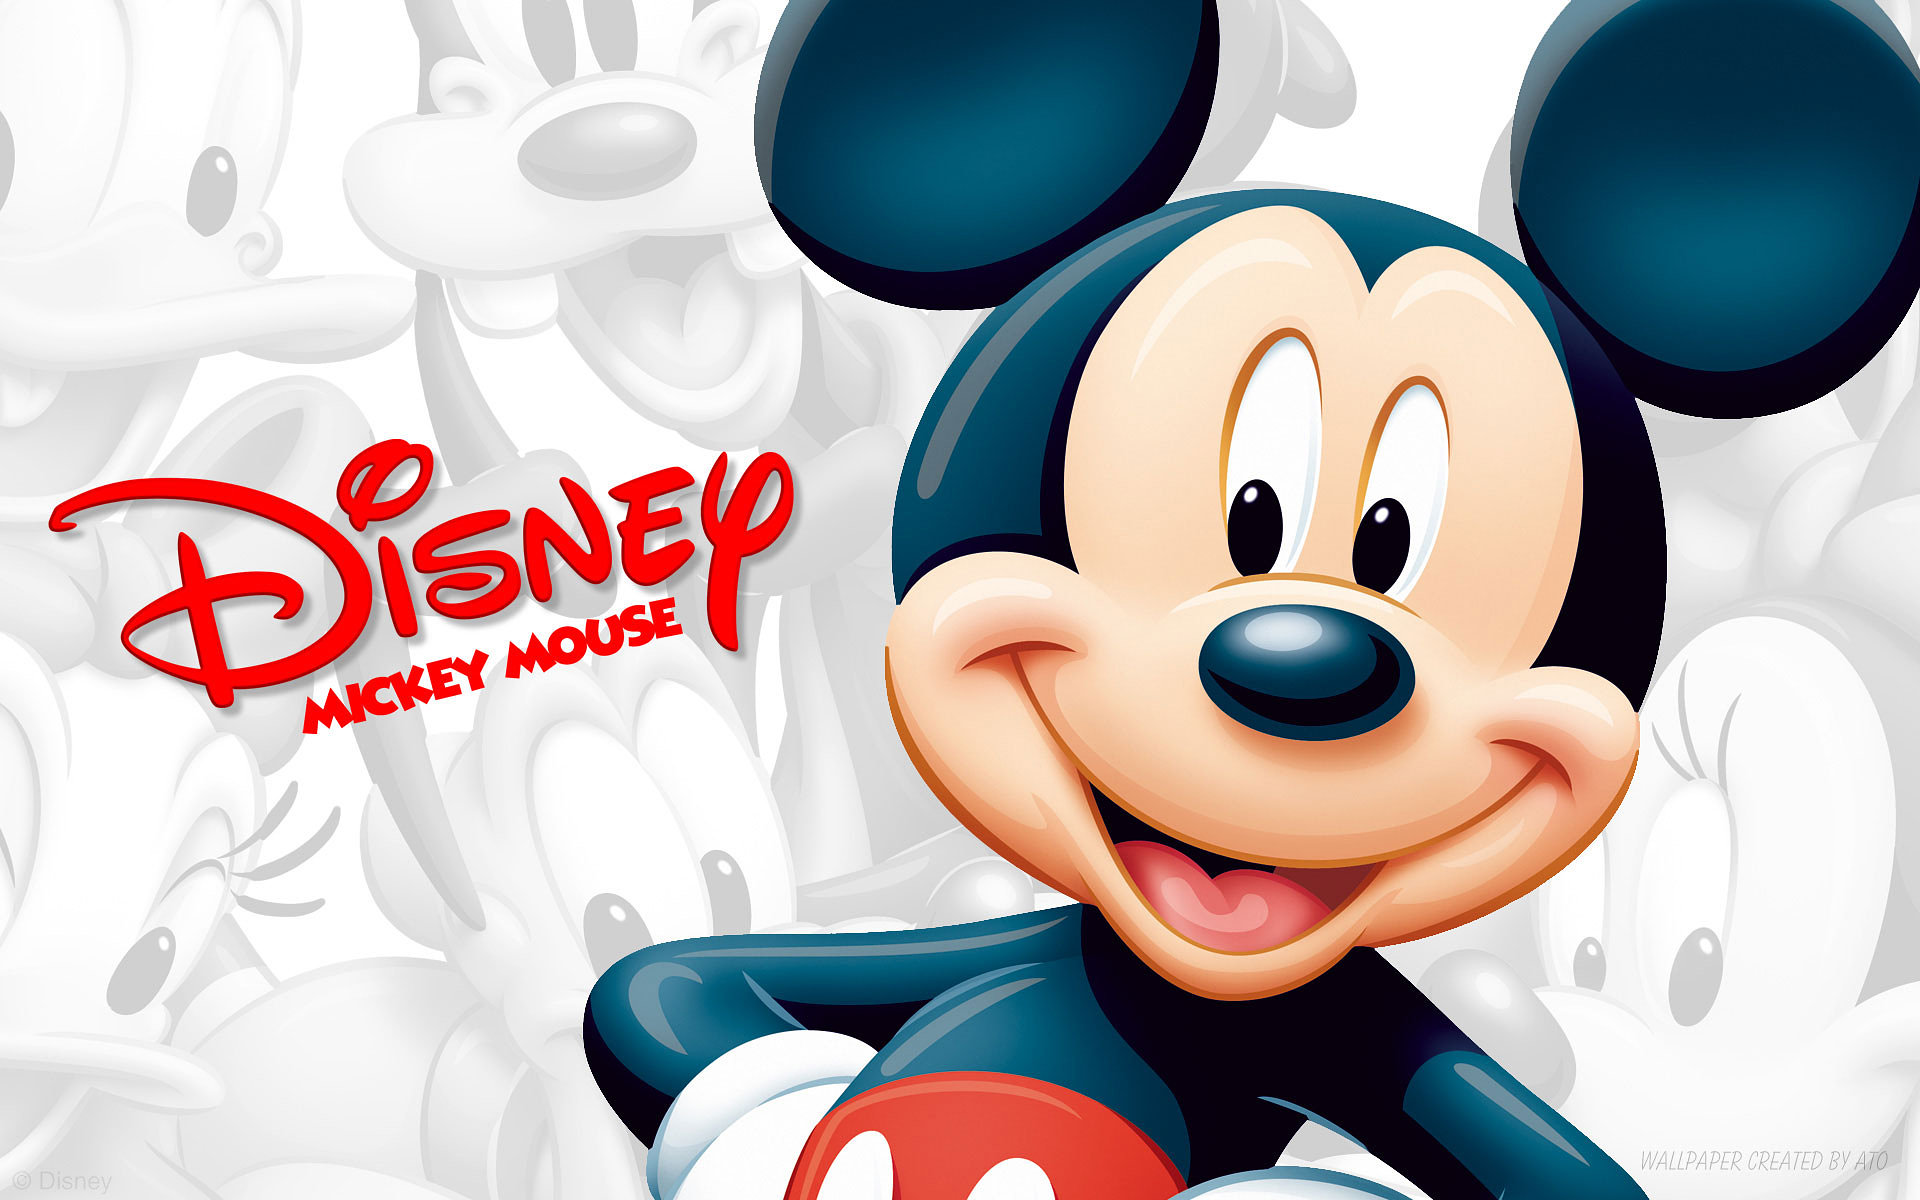 Mickey mouse full hd wallpaper and background image - Mickey mouse hd wallpaper 1366x768 ...